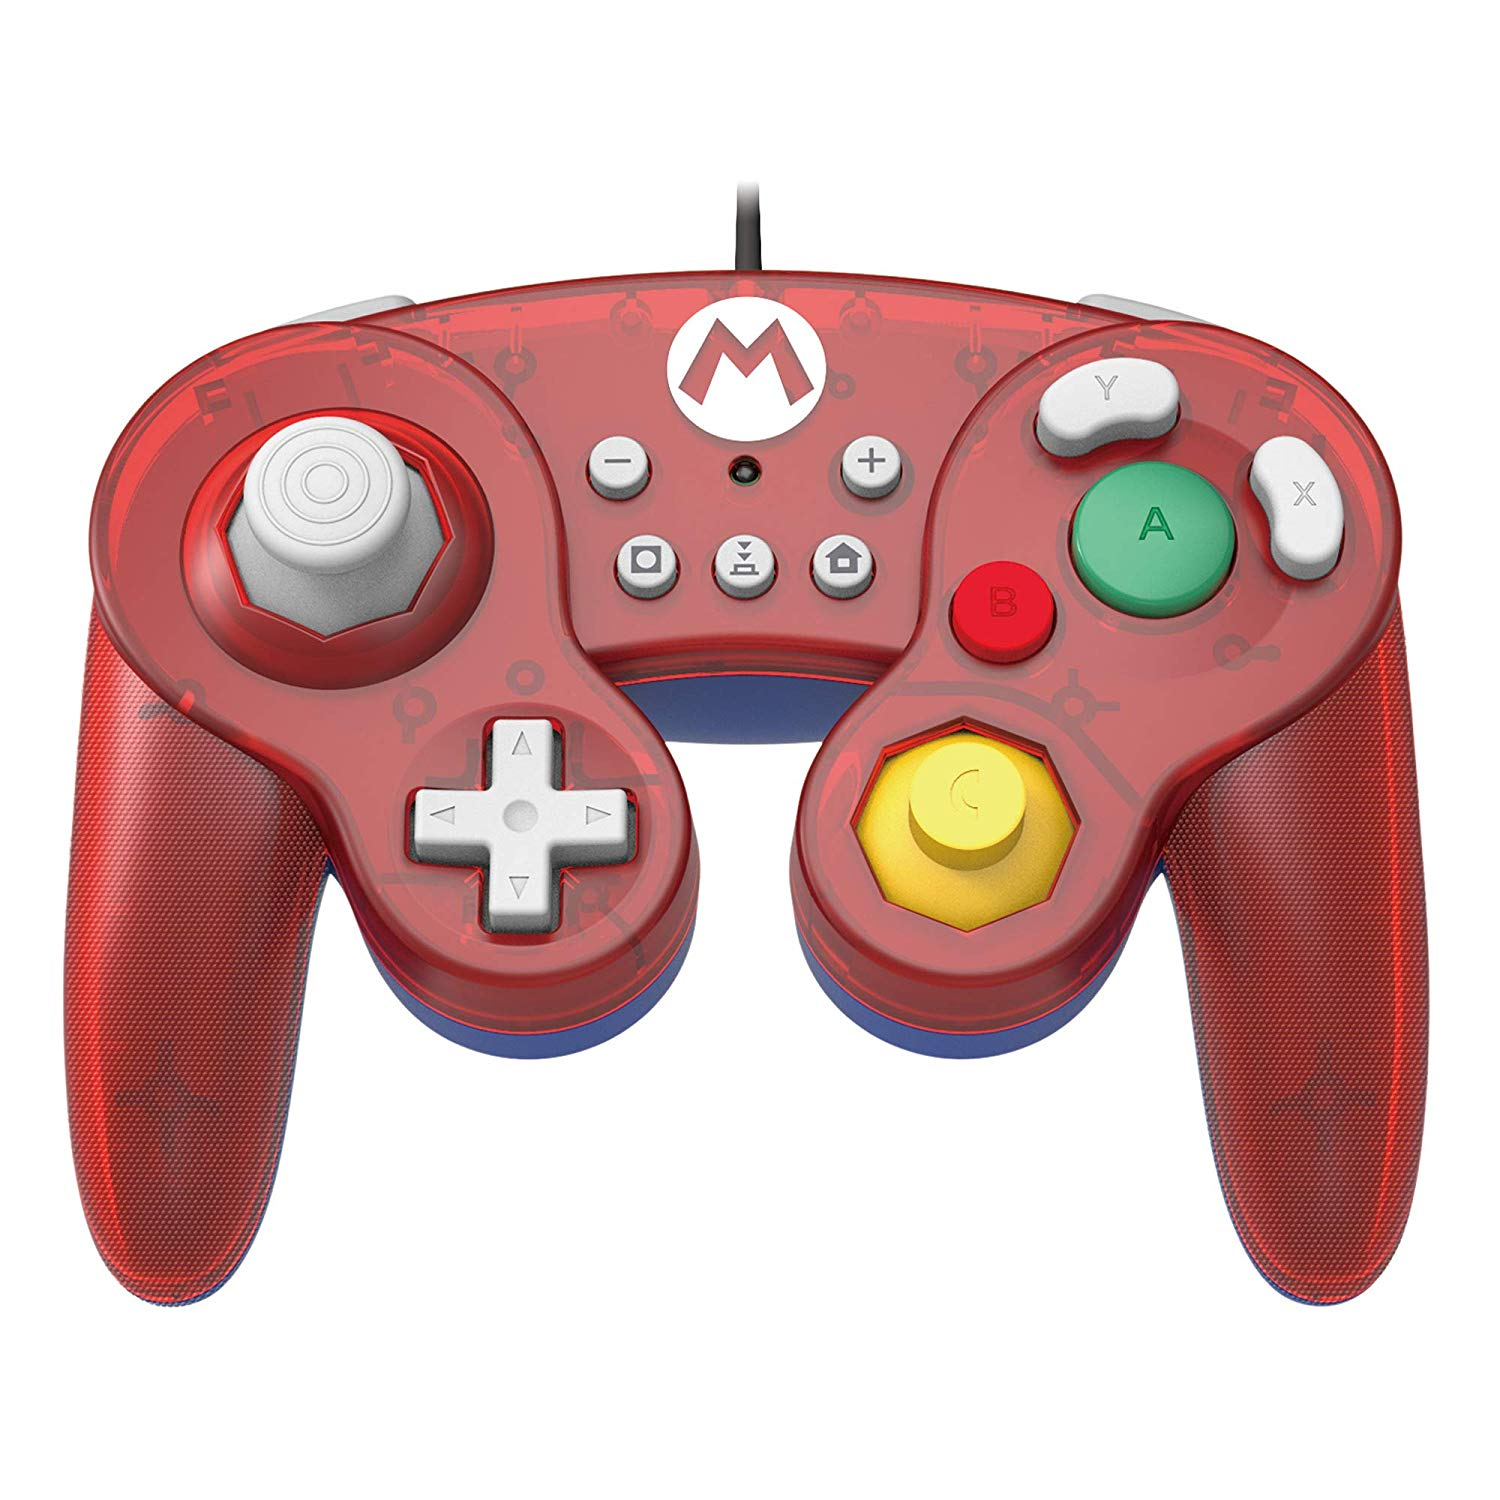 HORI Battle Pad Gamecube Style Controller – Mario Edition for Nintendo Switch £21.73